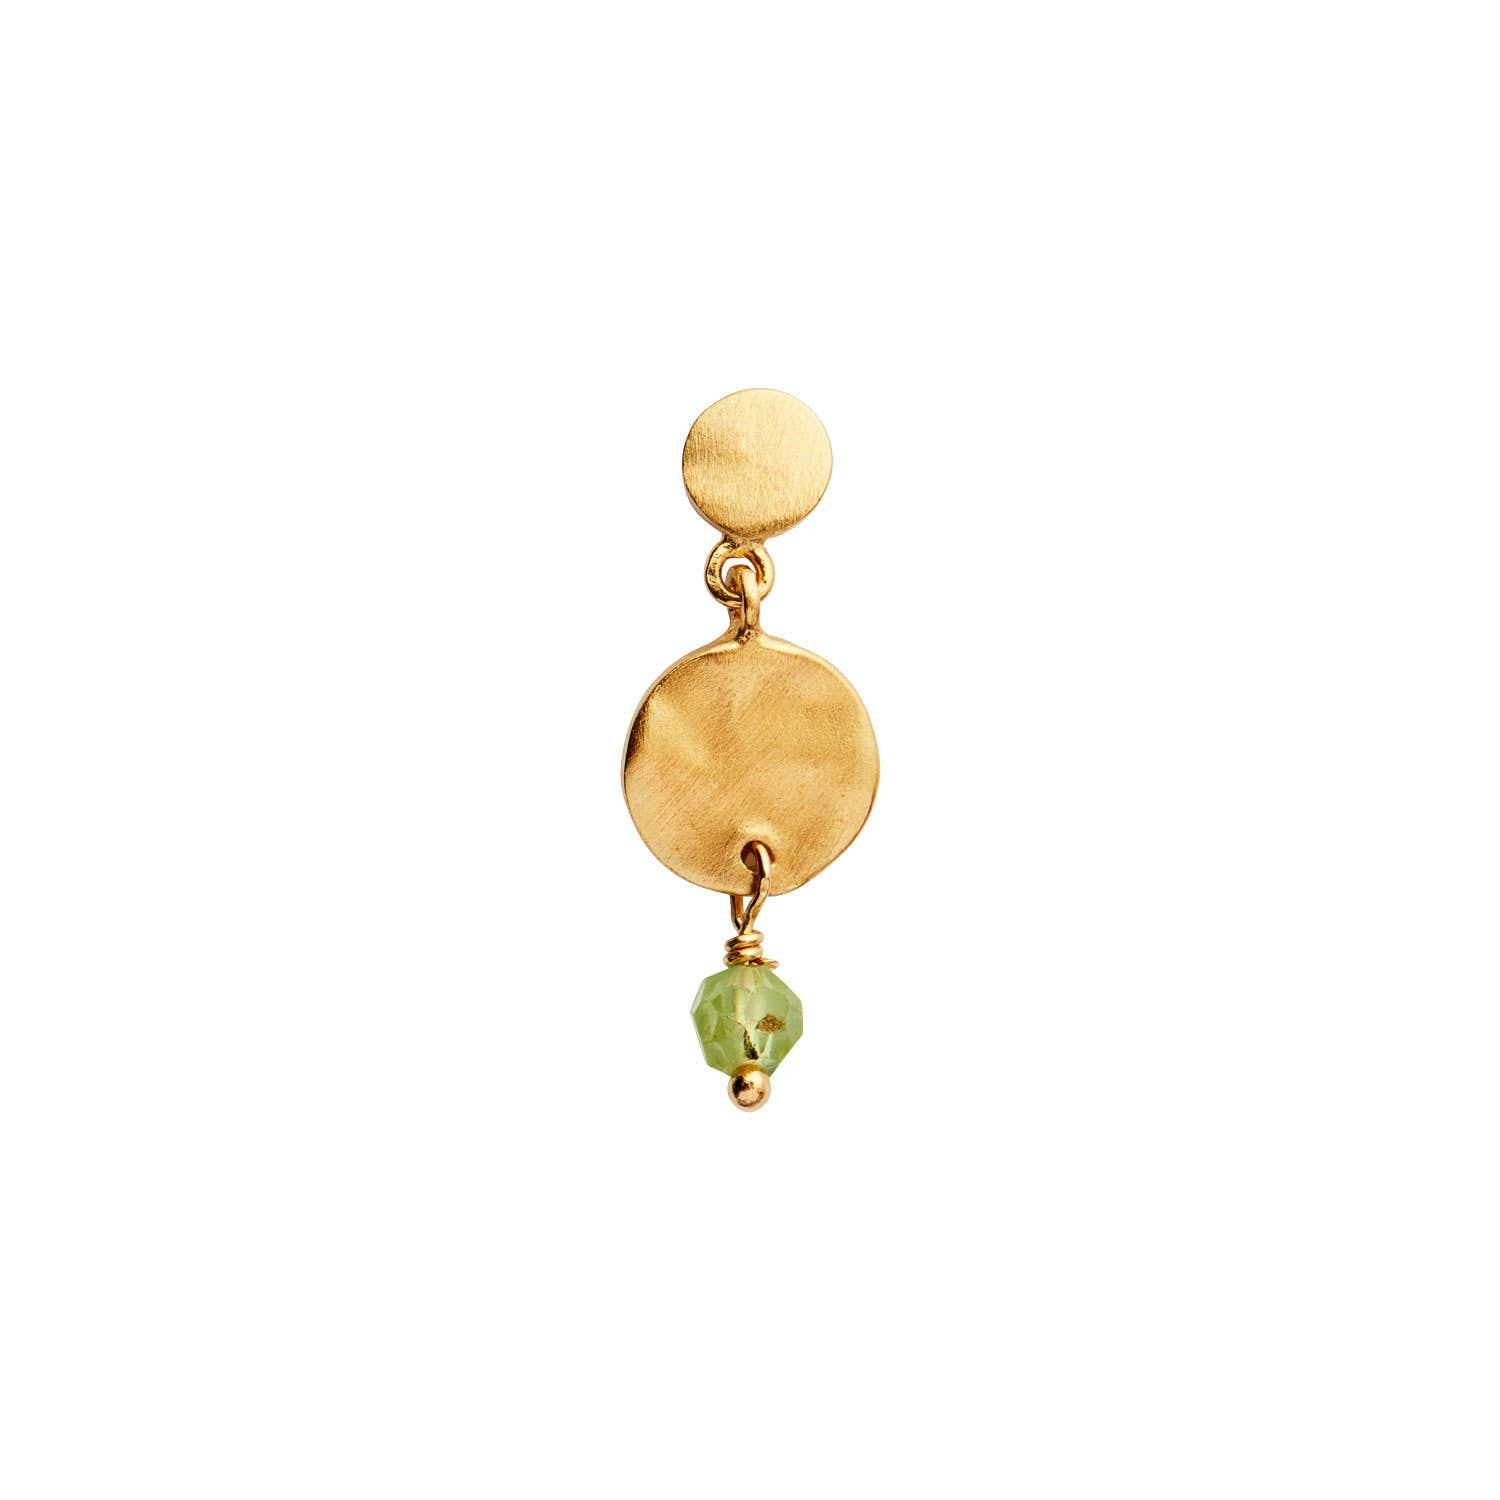 Petit Hammered Coin And Stone Earring Peridot von STINE A Jewelry in Vergoldet-Silber Sterling 925|Gehämmert